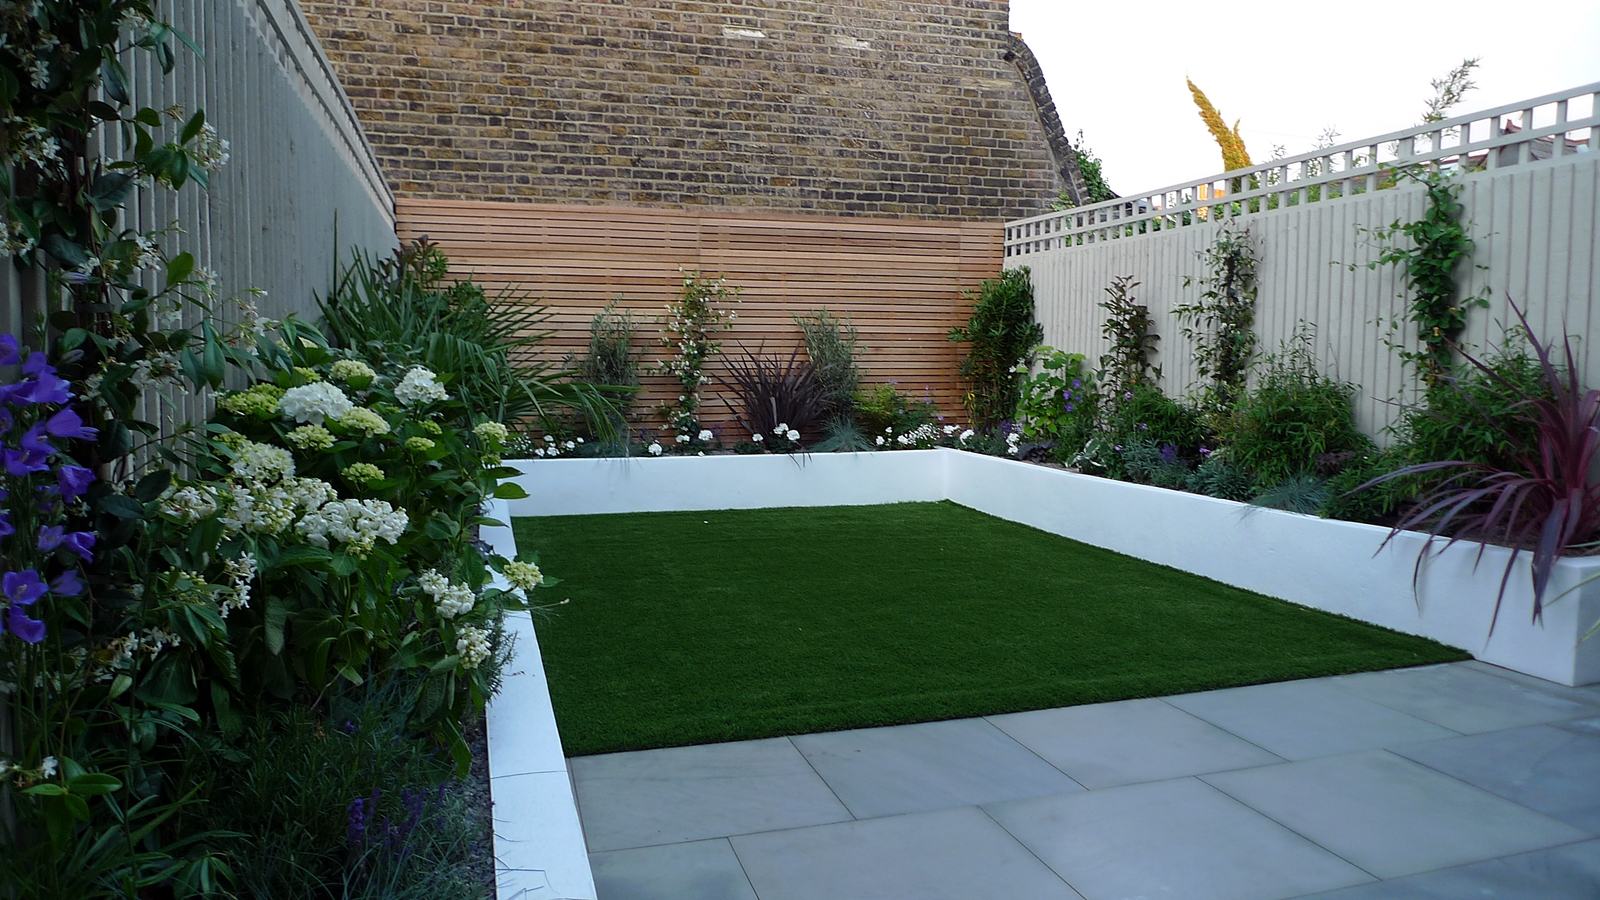 sawn grey sandstone paving raised rendered beds hardwood screen painted stone fence london small garden design (1)